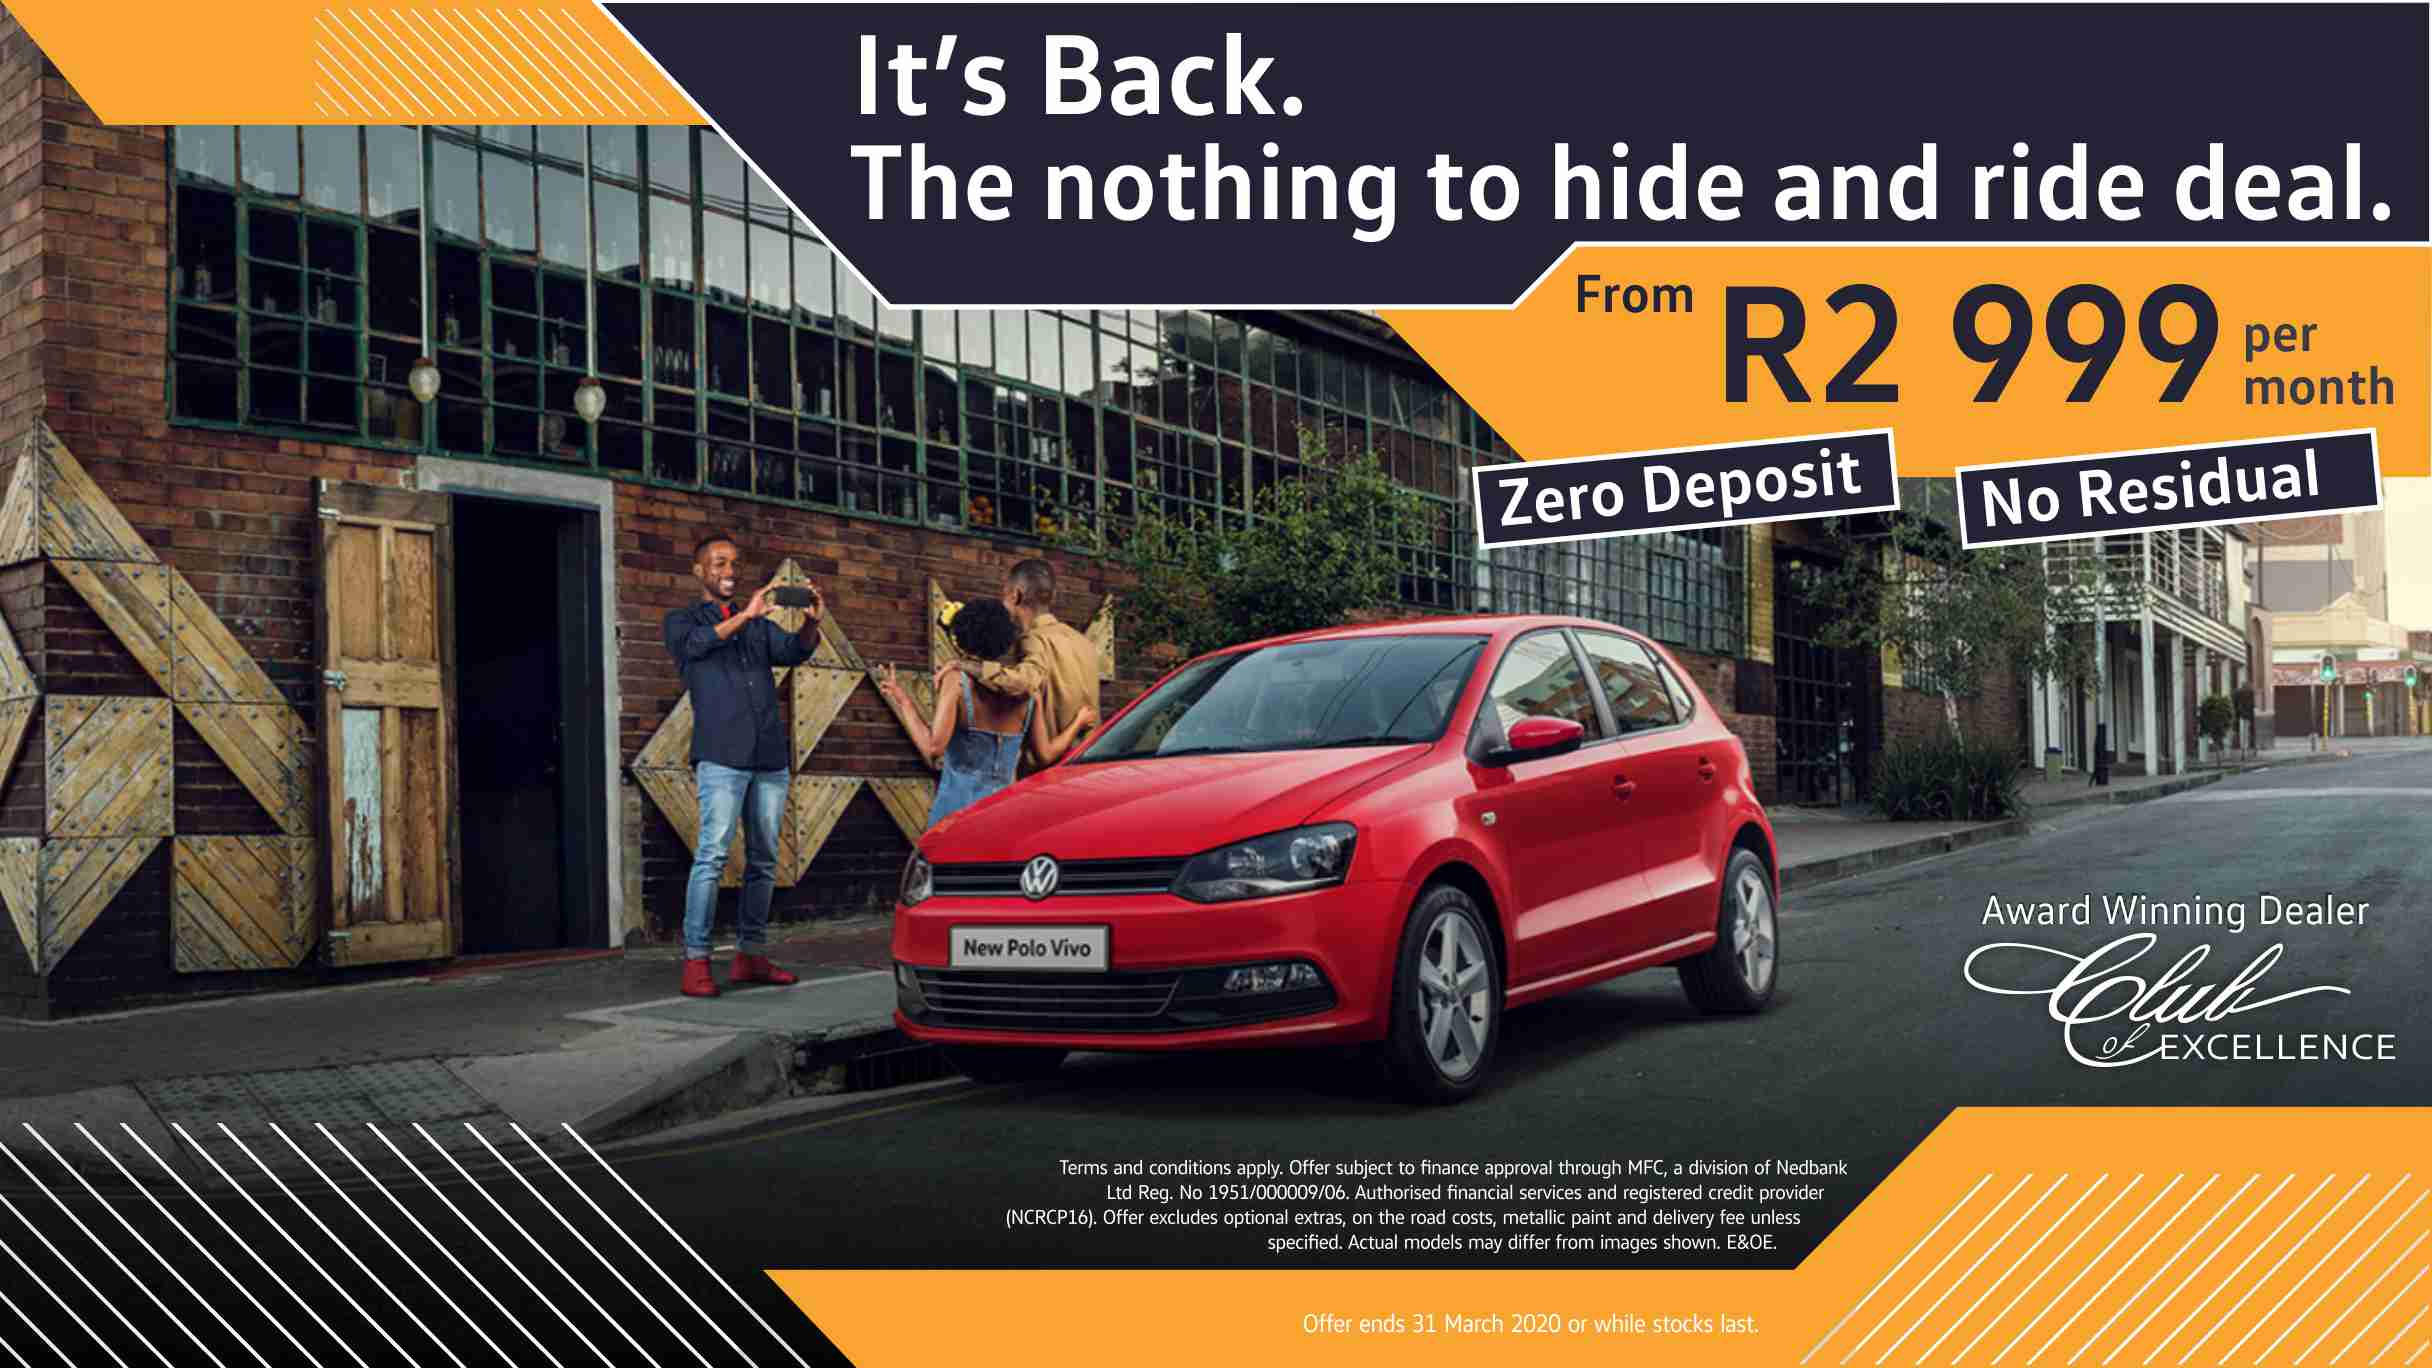 Polo Vivo nothing to hide and ride deal